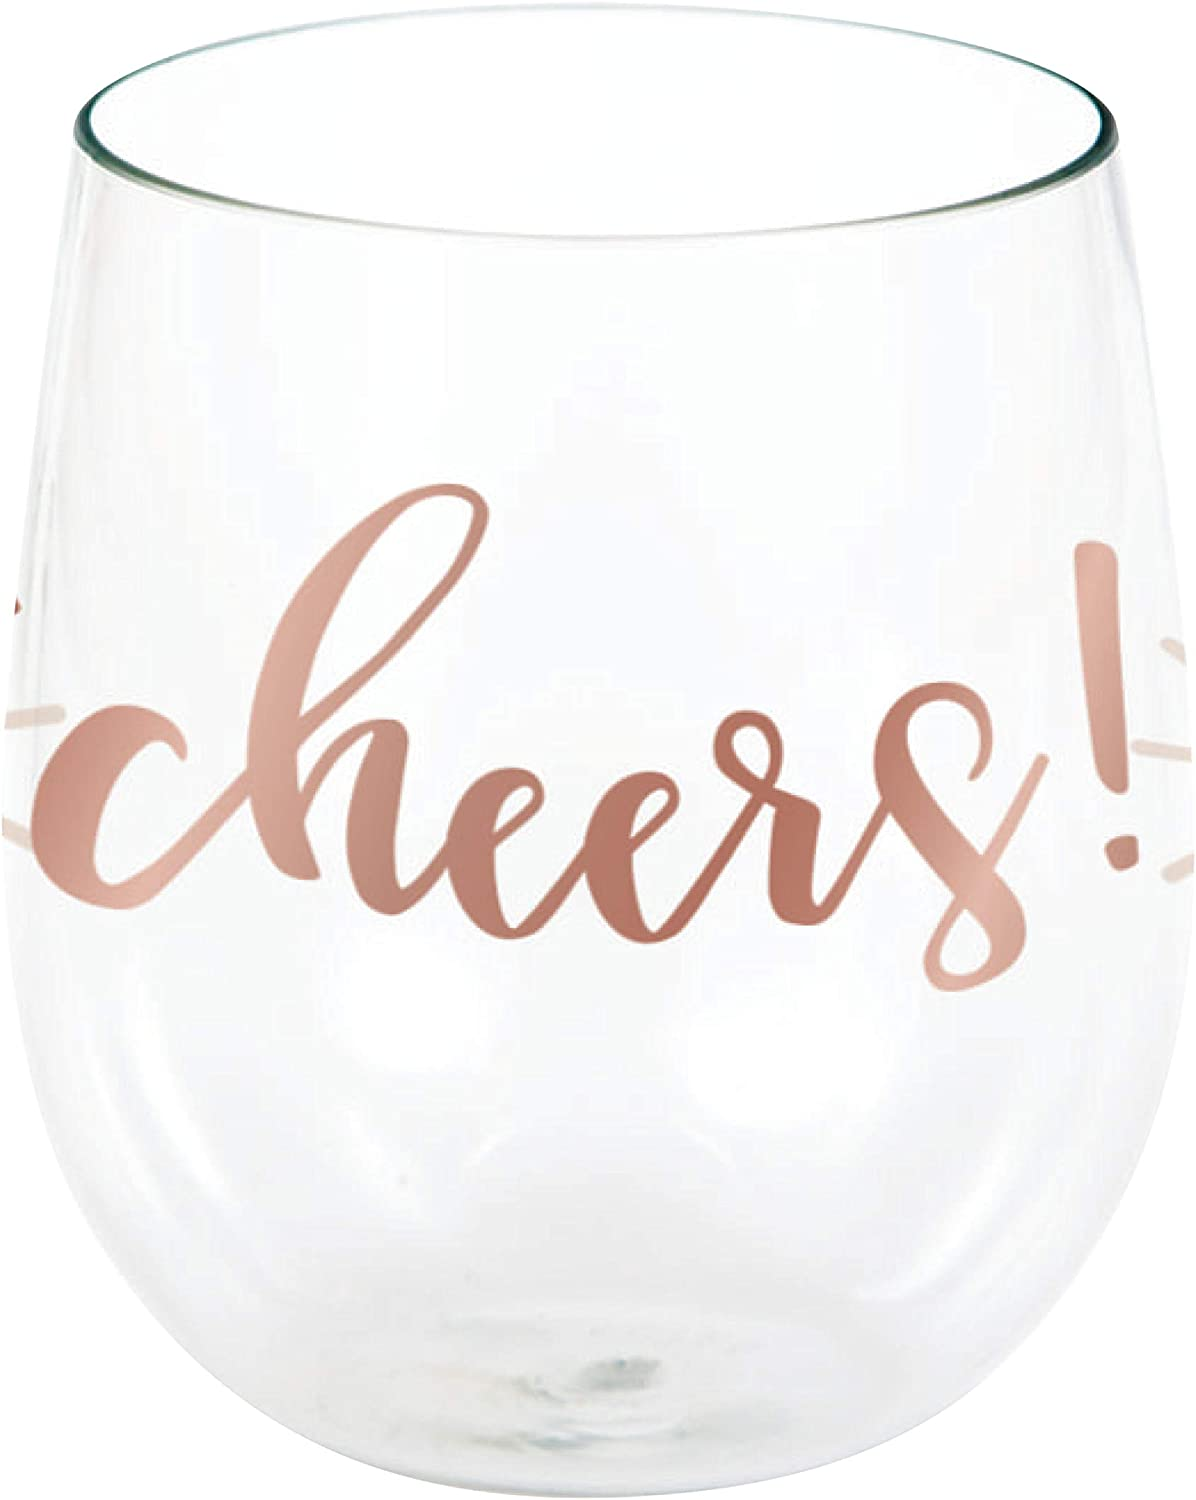 Creative Rapid rise Converting Rosé All Day Plastic Gl Stemless Wine Recommendation Cheers